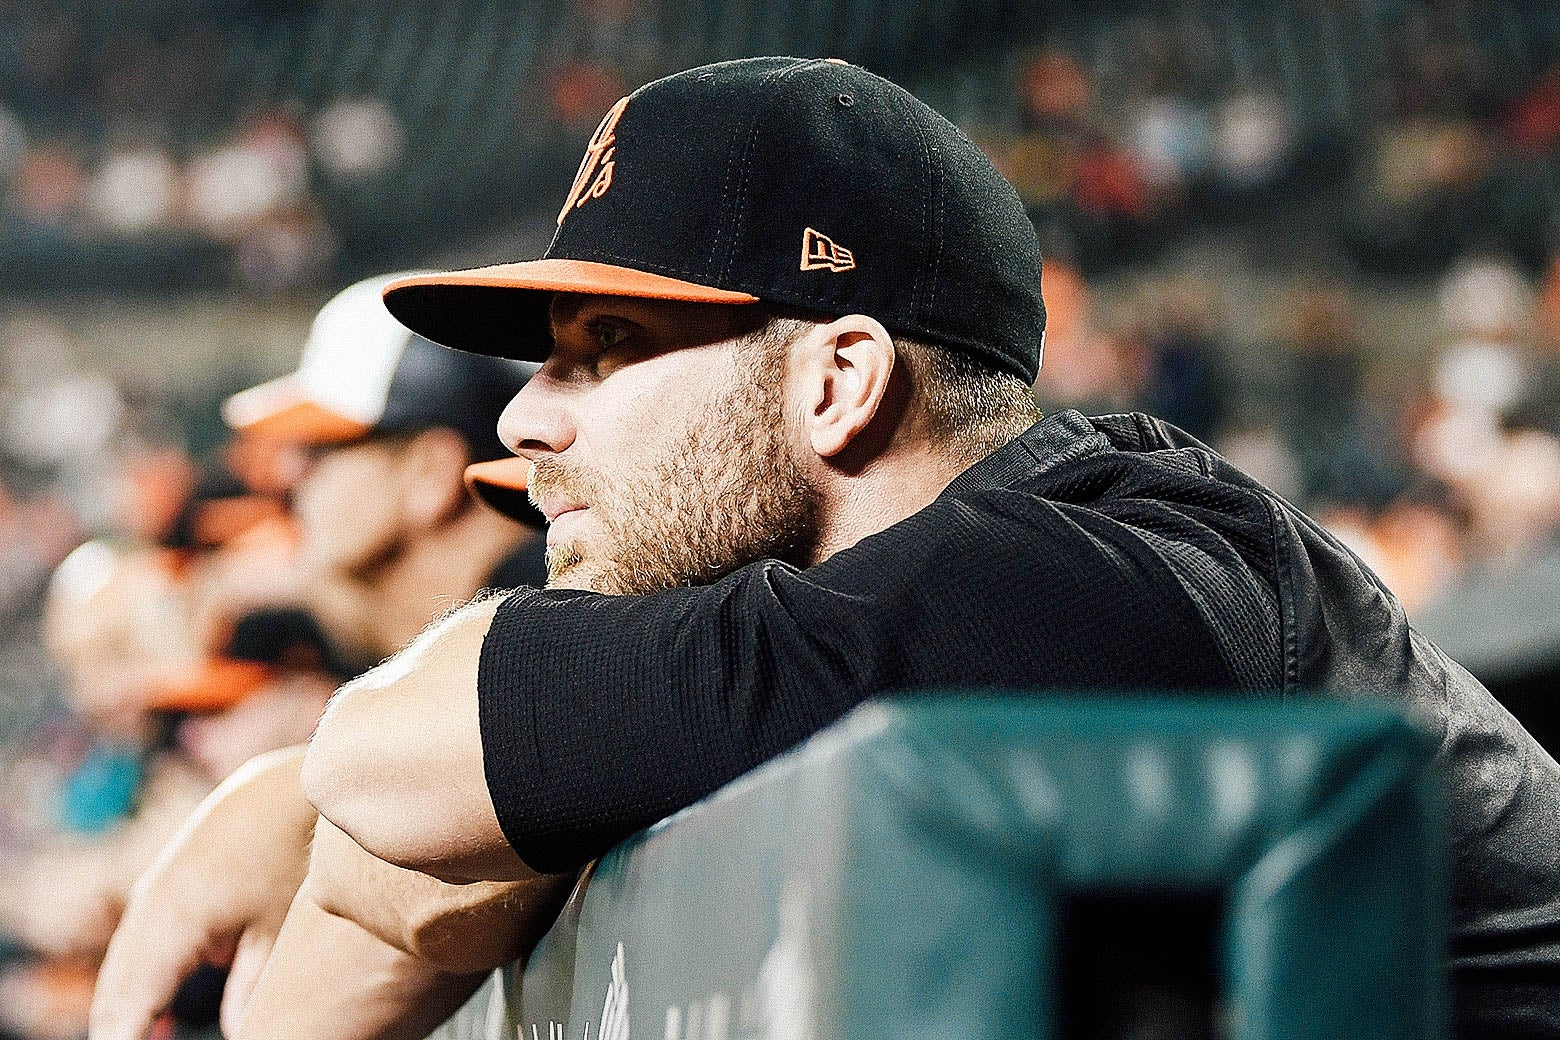 Chris Davis of the Baltimore Orioles watches the game during the second inning against the Houston Astros at Oriole Park at Camden Yards on Sept. 28.